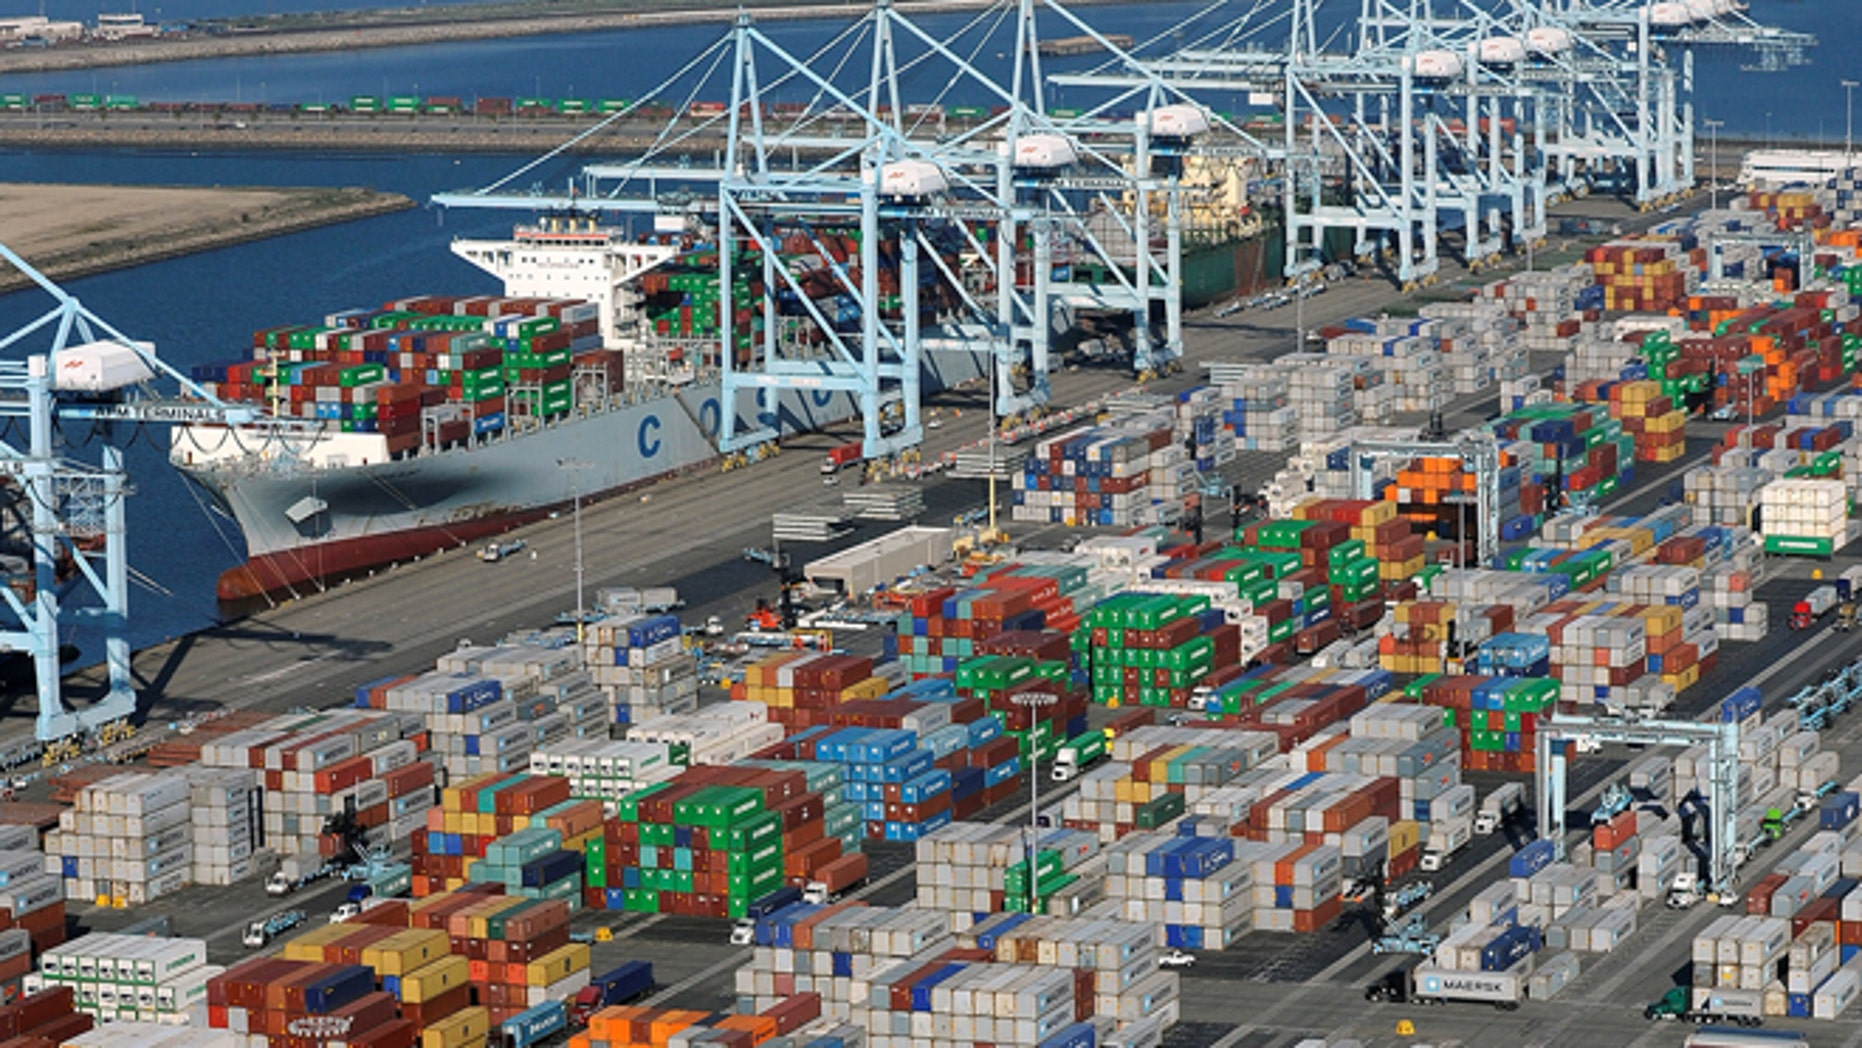 Shipping containers at the ports of Los Angeles and Long Beach, California.